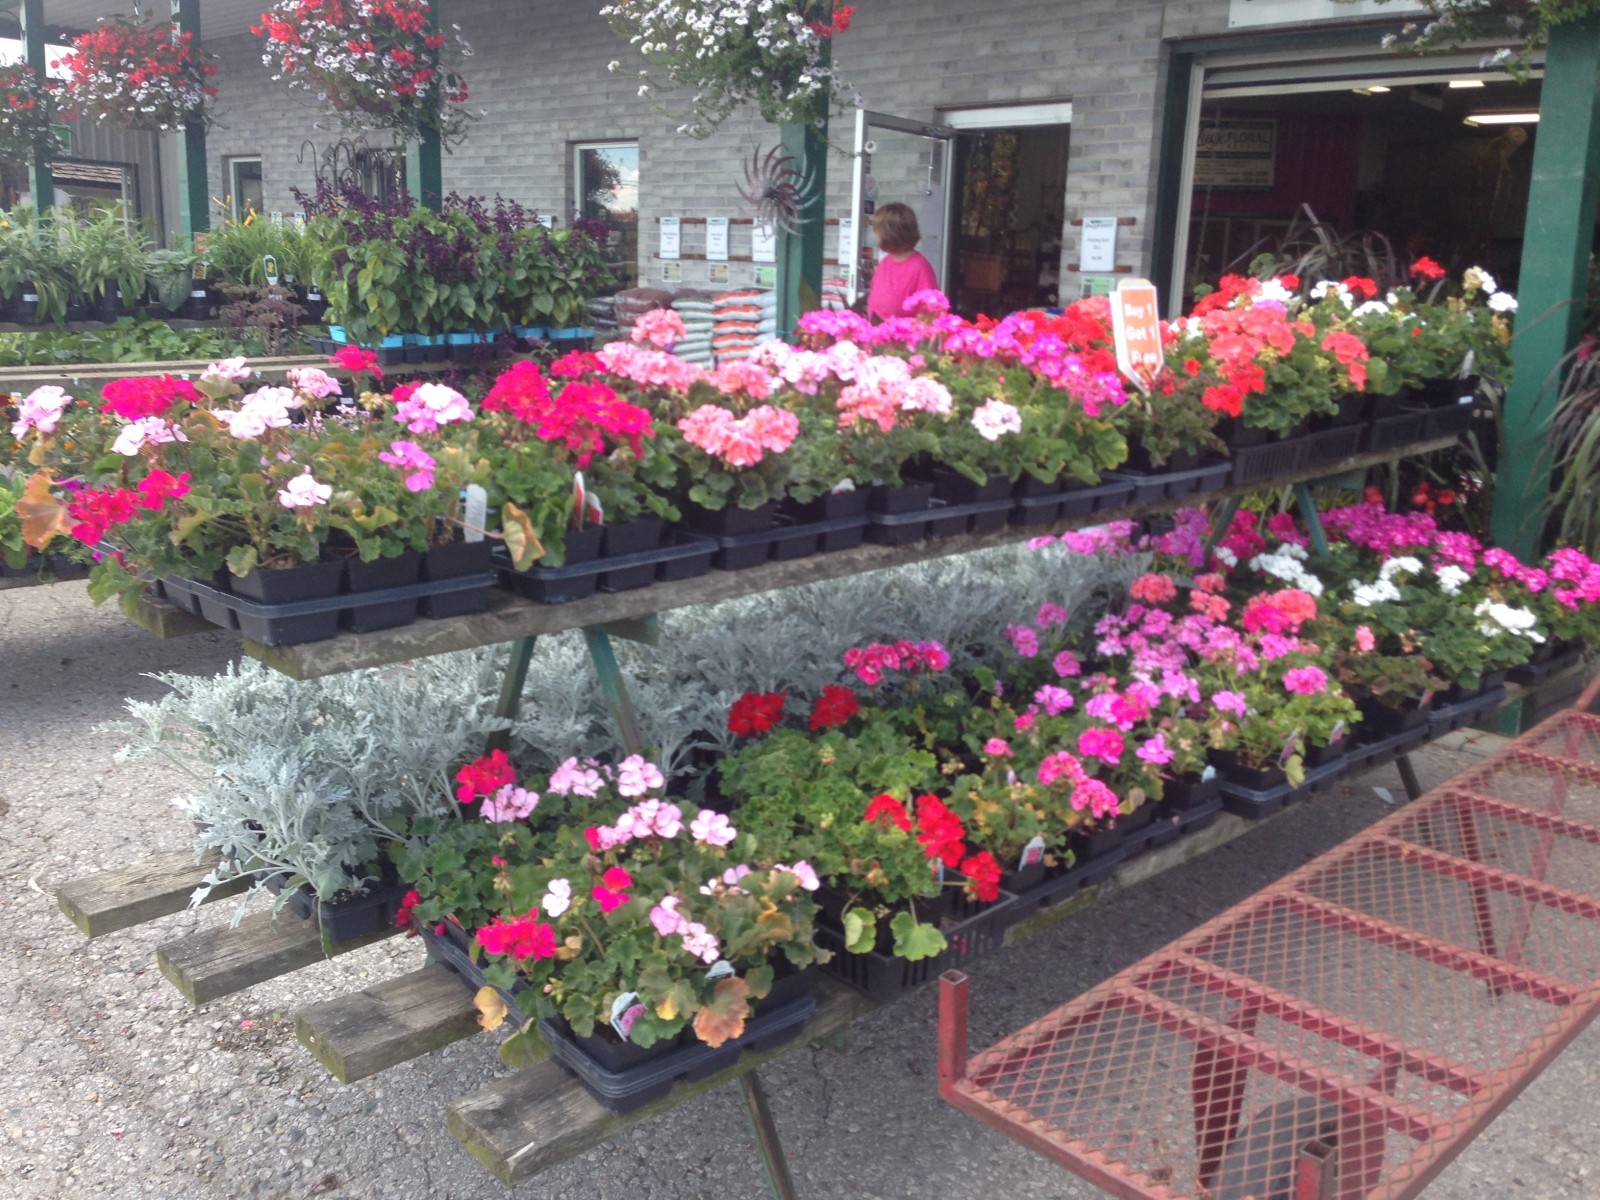 Garden centre say business is blooming well this year